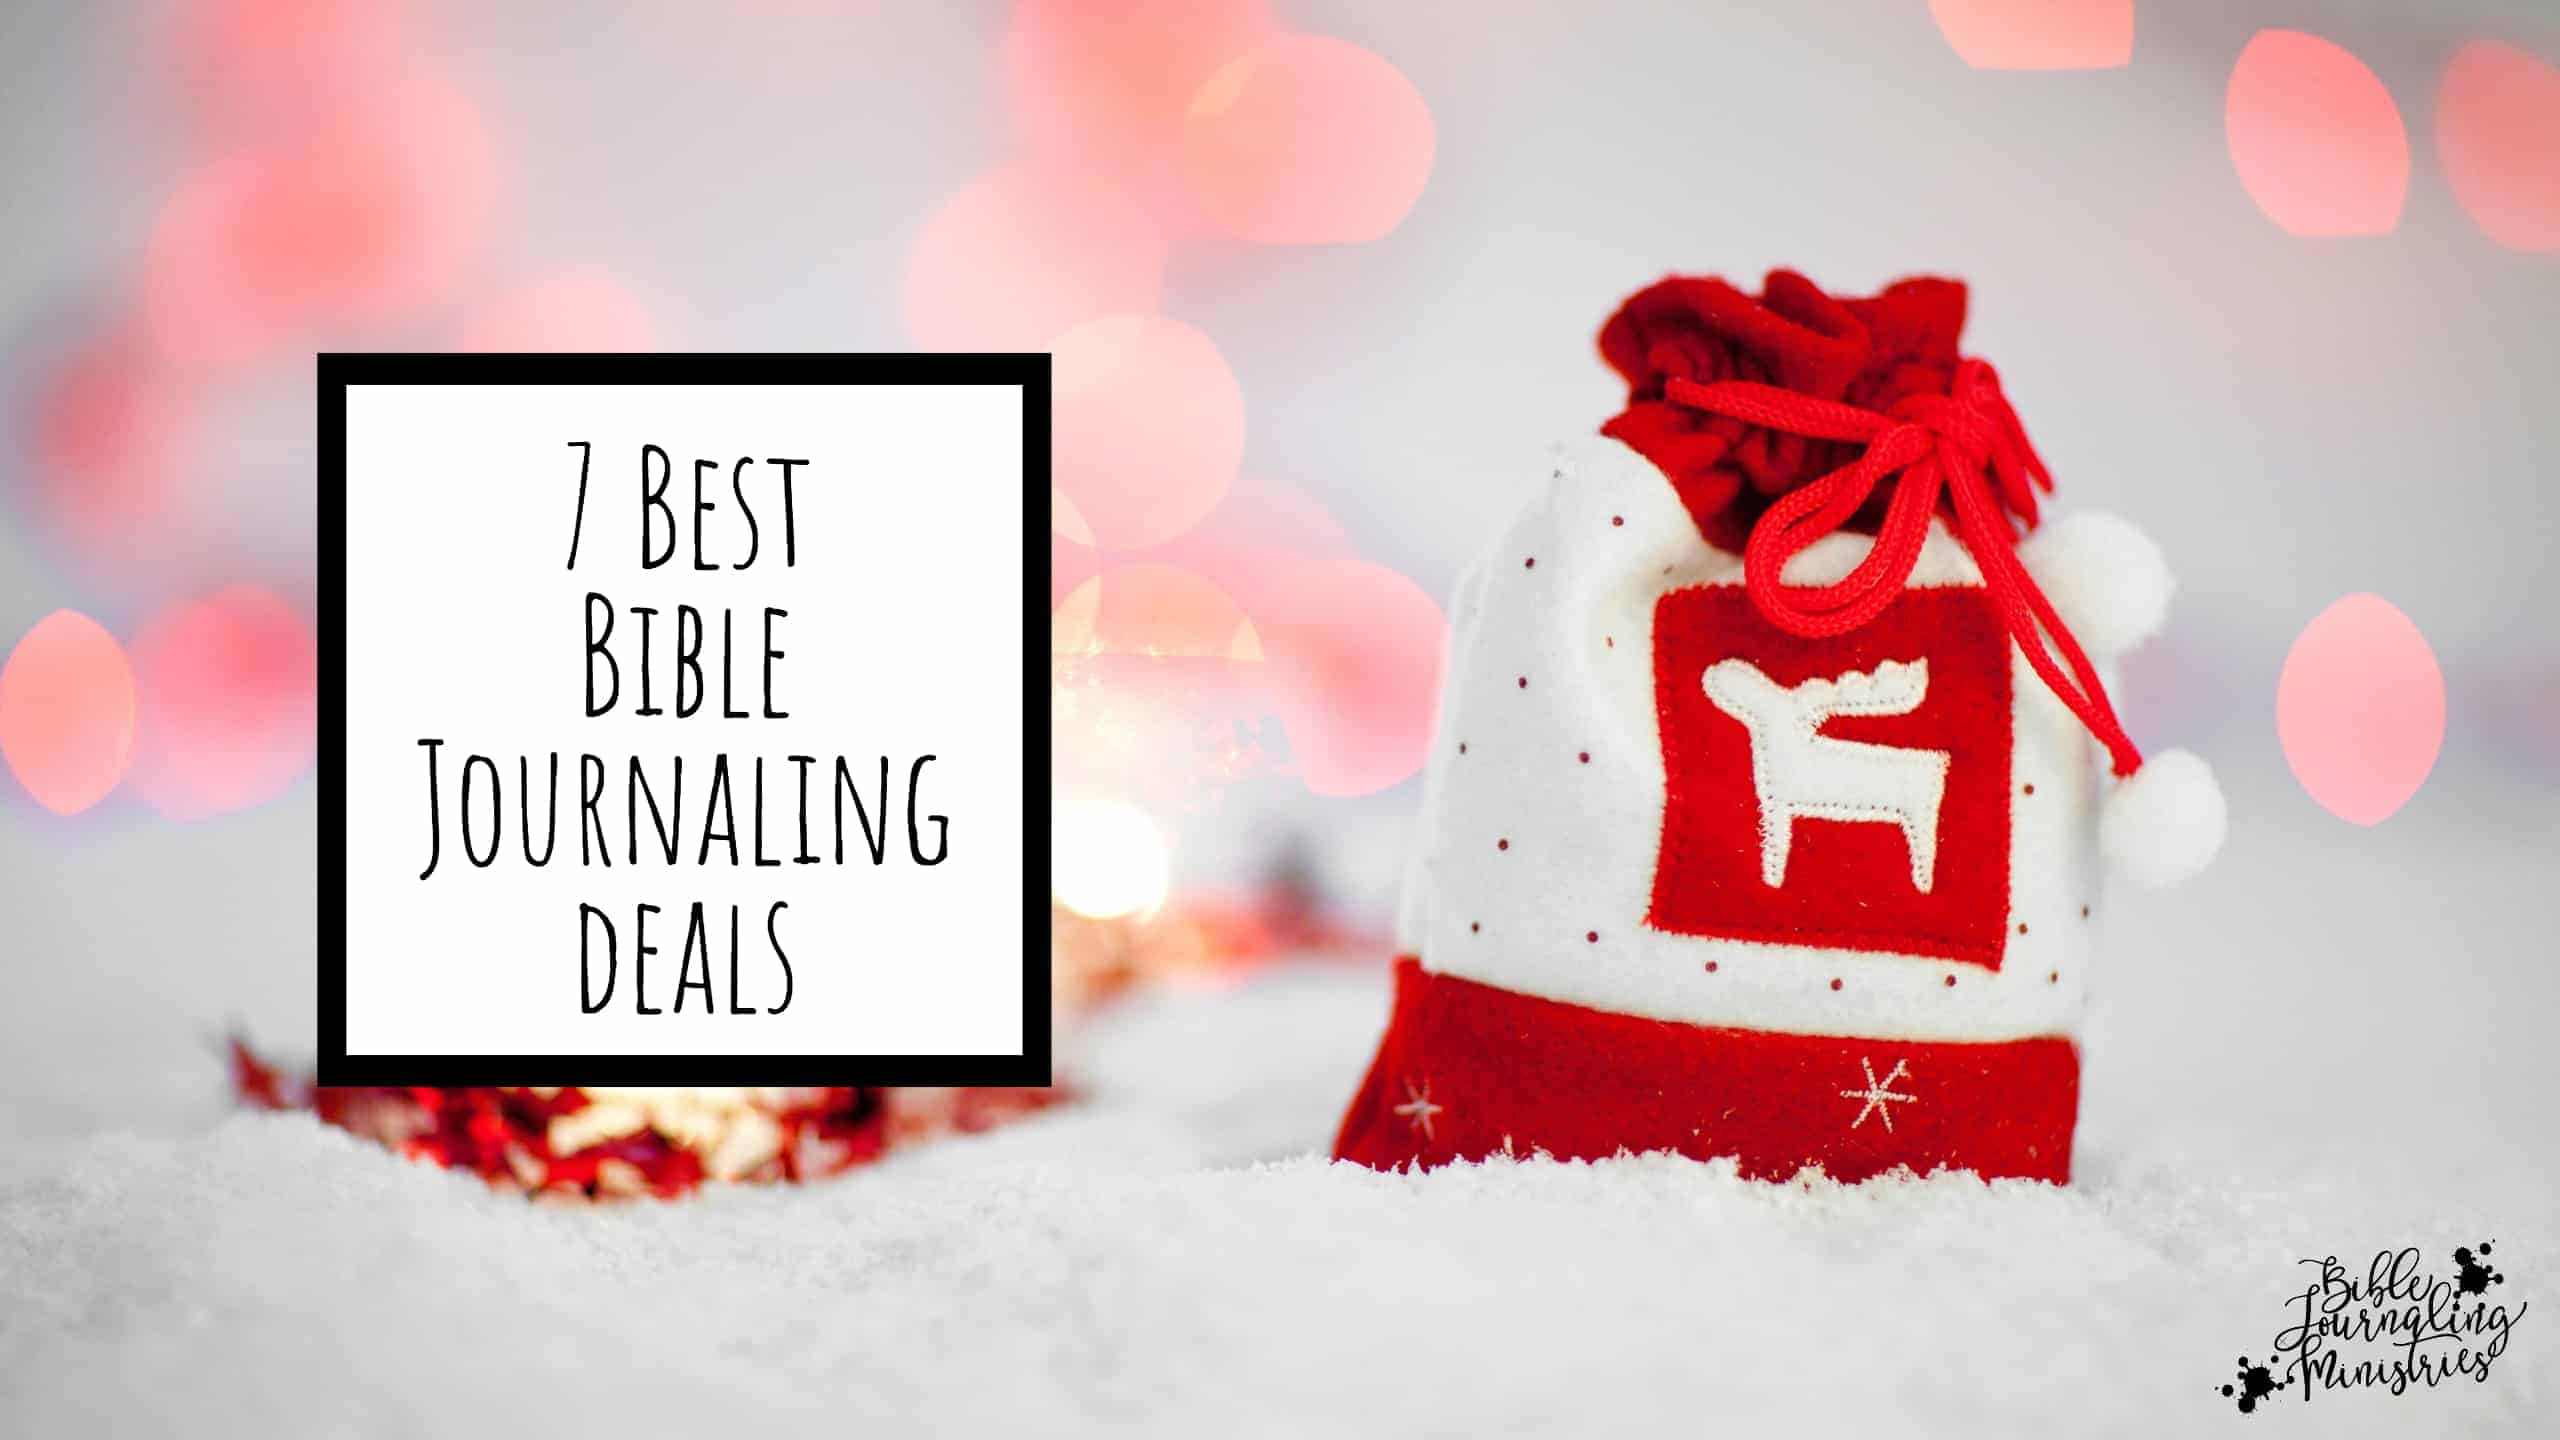 7best bible journaling deals